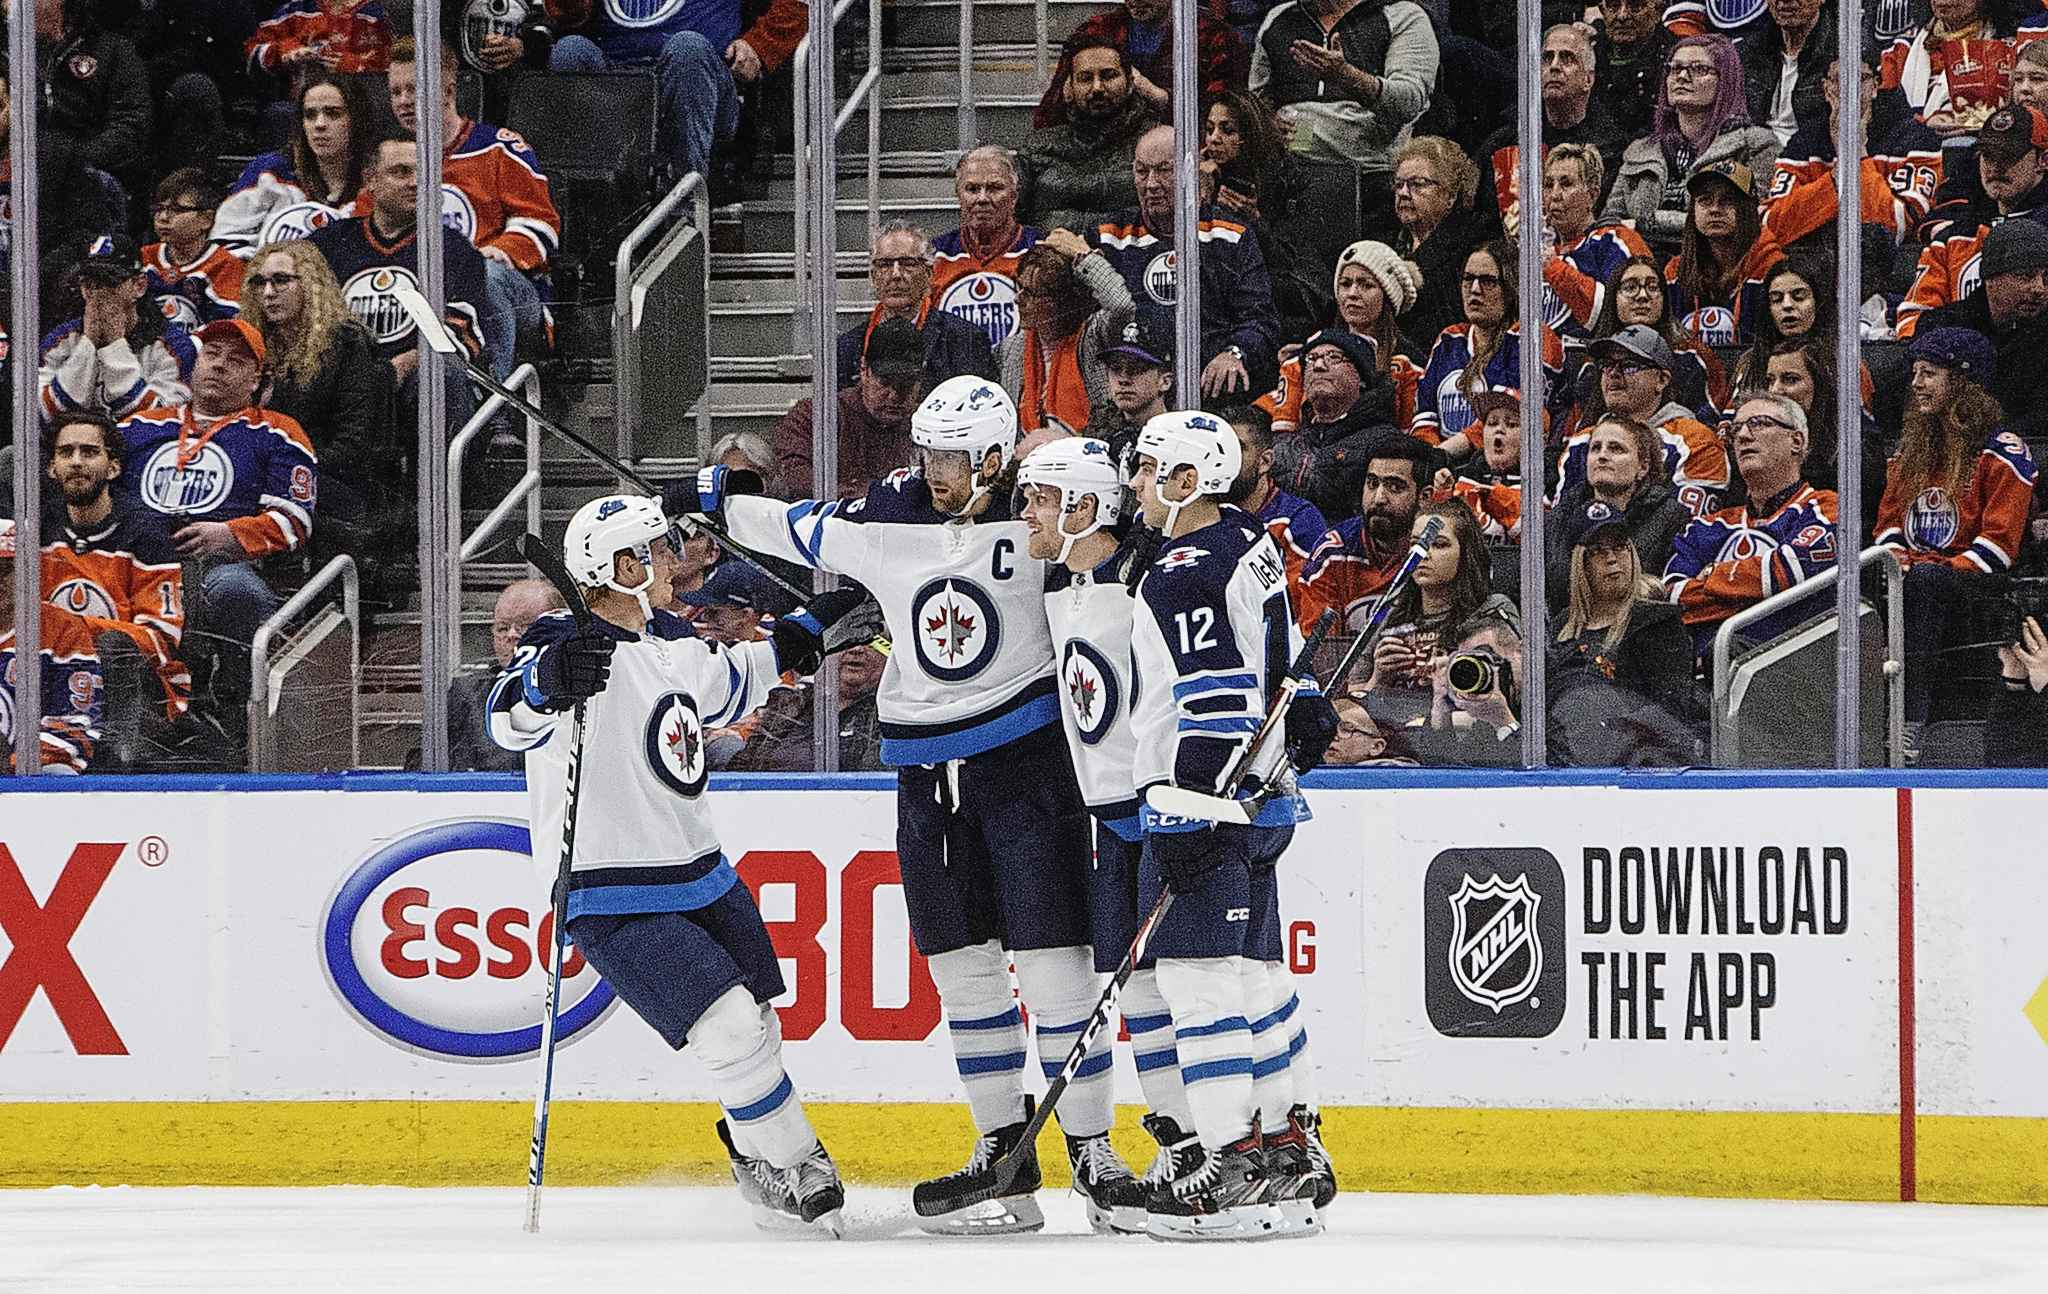 With the Jets decisive win over the Edmonton Oilers on Wednesday their fourth straight victory, the team was trending in the right direction as it headed into the home stretch of the season.